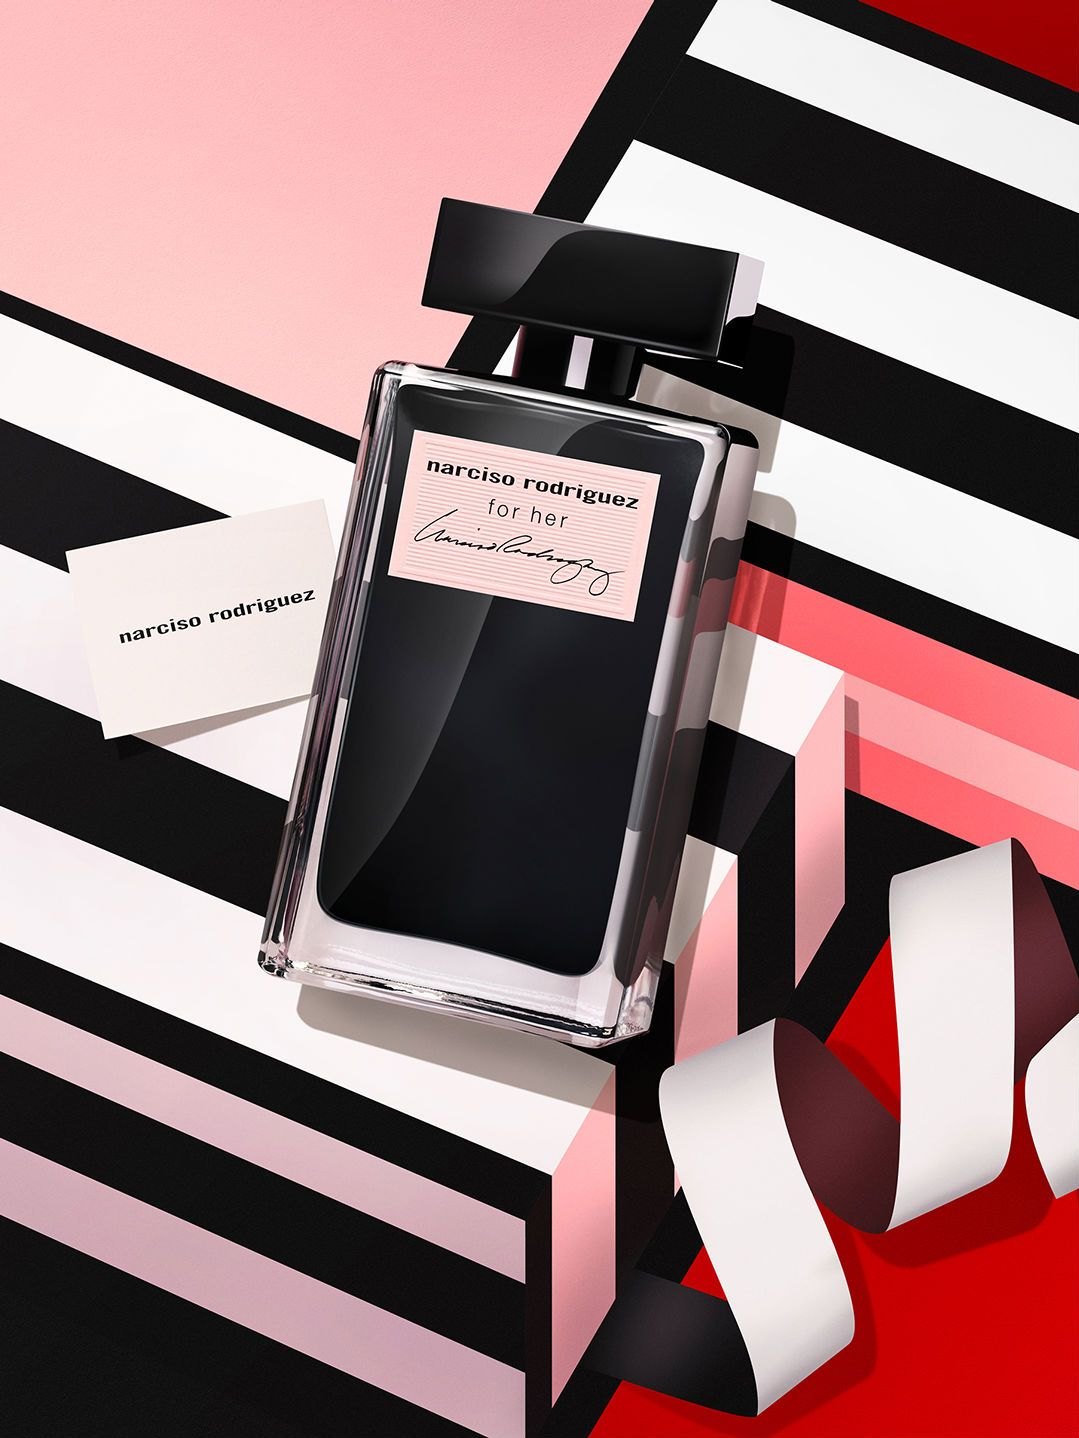 SEPHORA_MOTHERS DAY | Sephora, Mother's day, Artist management